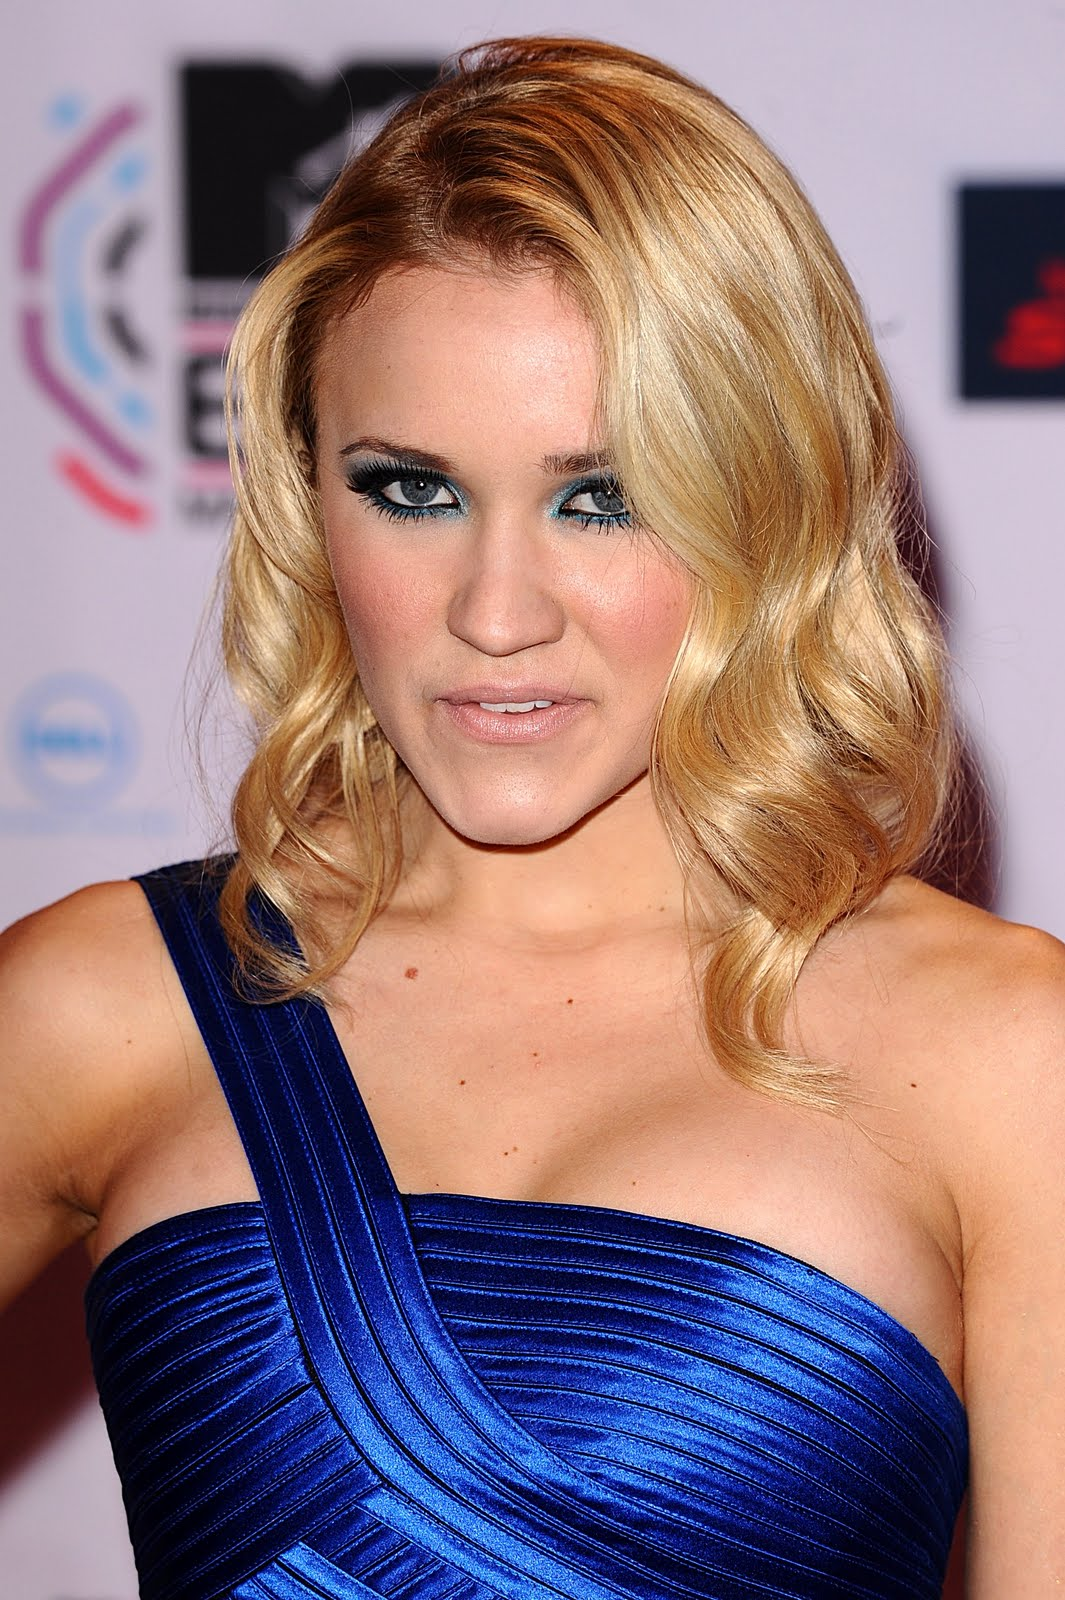 Emily Osment Clevage Images | FemaleCelebrity